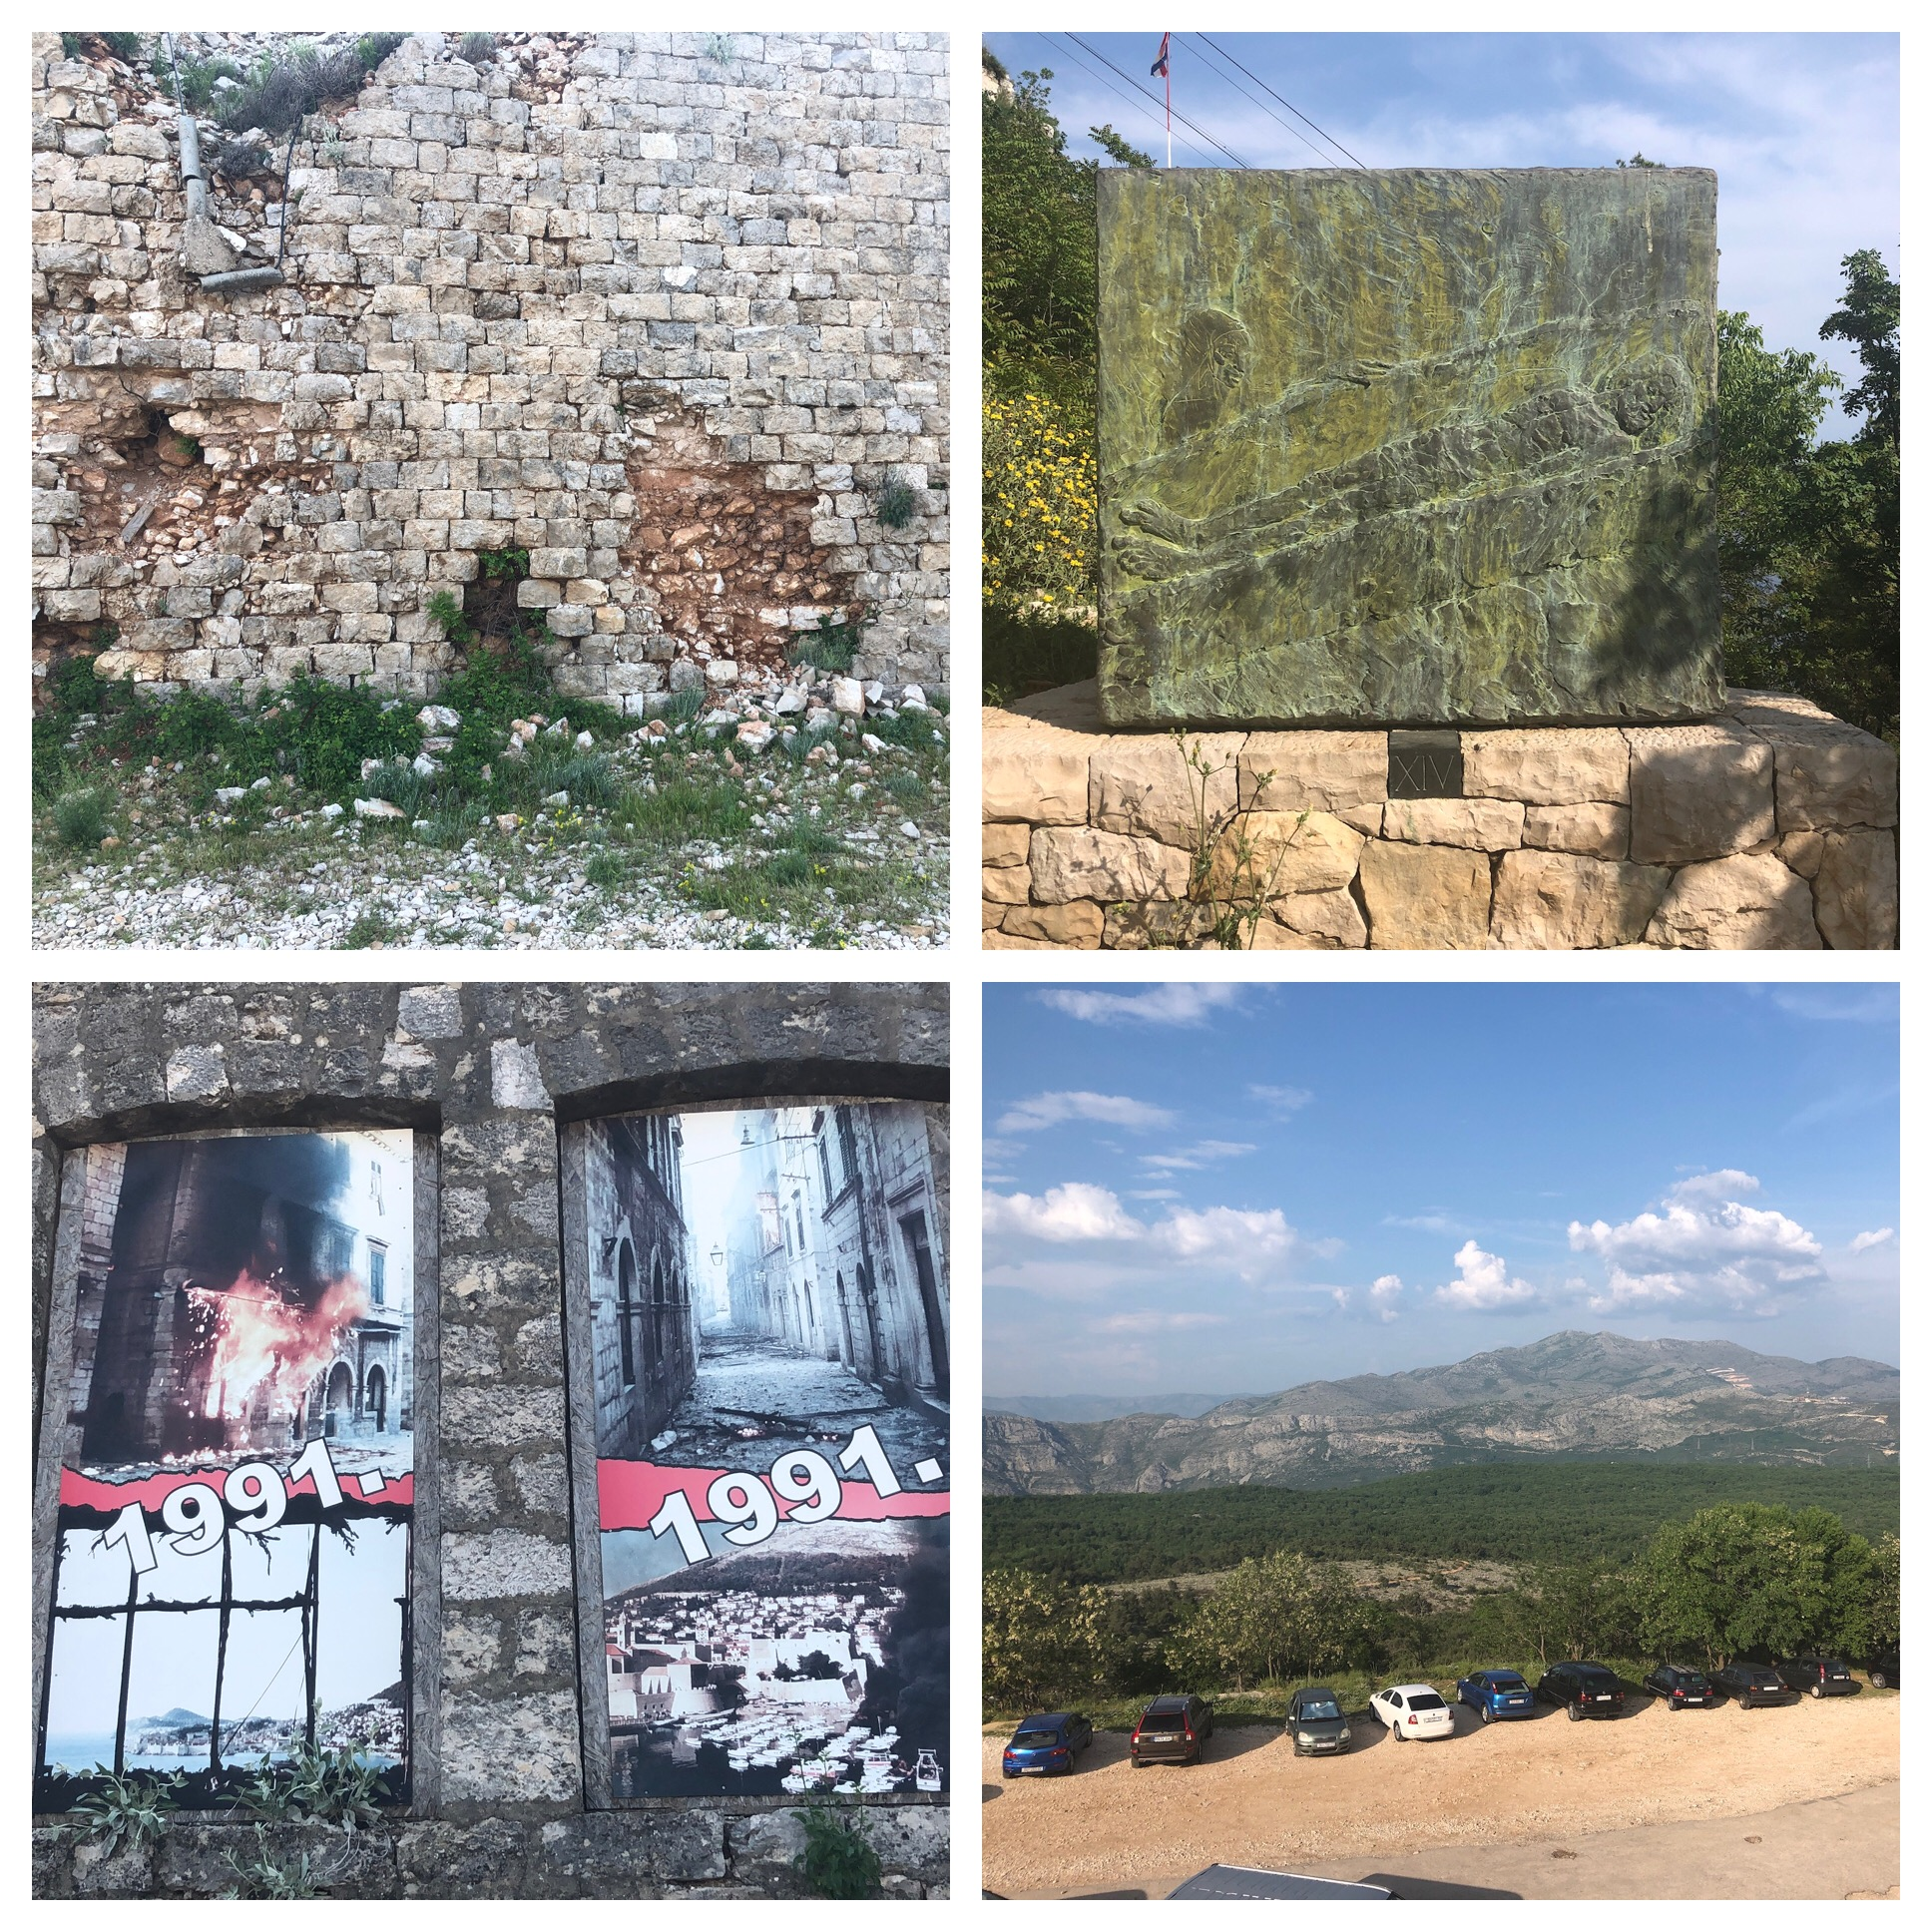 Damage from the bombings on the fortress. At every turn on the way up the switchbacks are beautiful castings of the Stations of the Cross. Bottom right is the view of the mountains and valley behind the fortress.